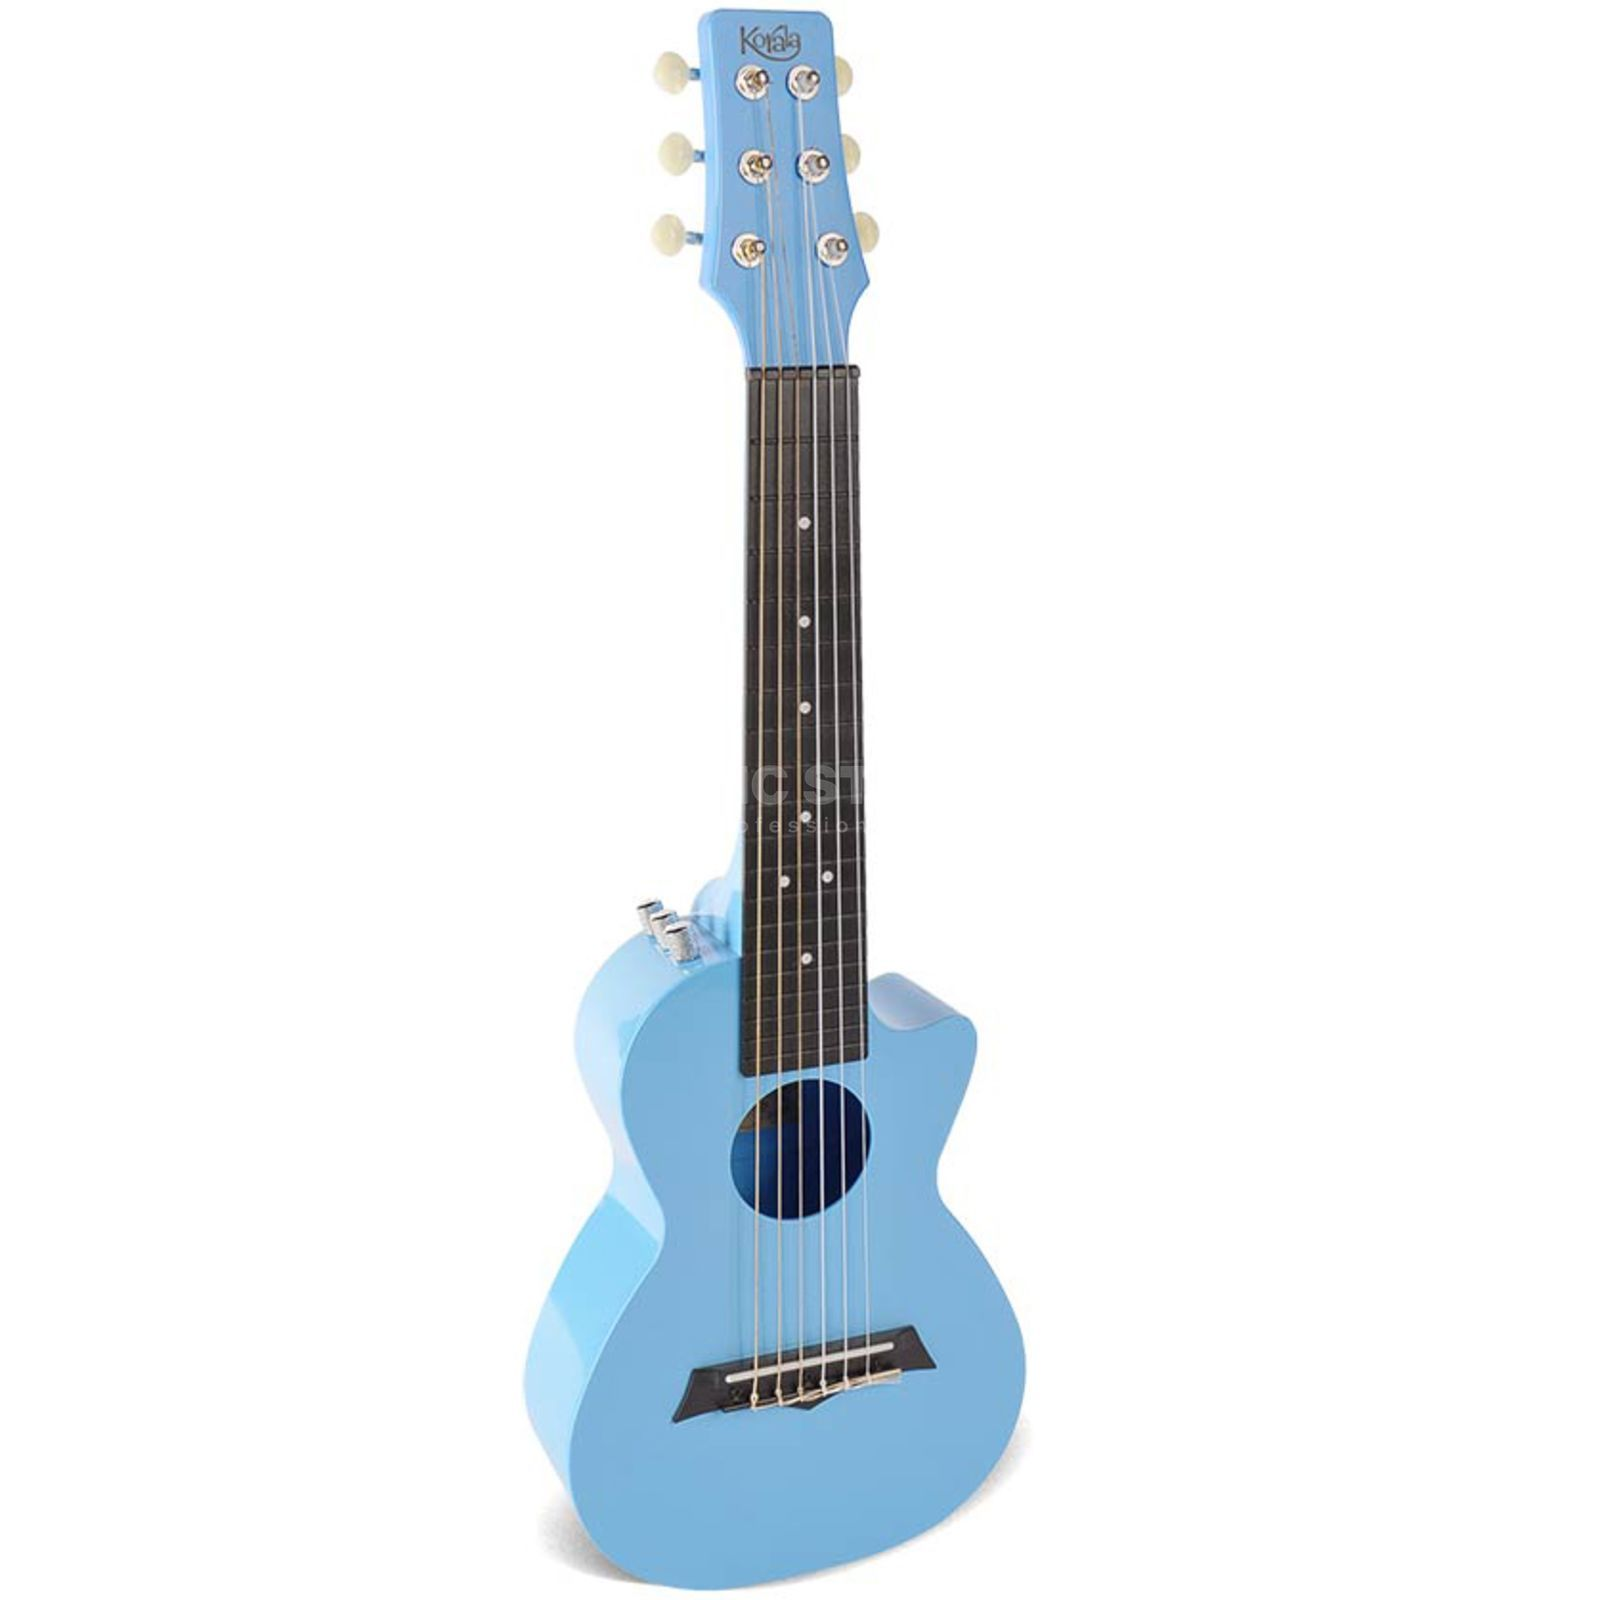 Mahalo PUG-40E Guitarlele Light Blue Pickup Produktbild